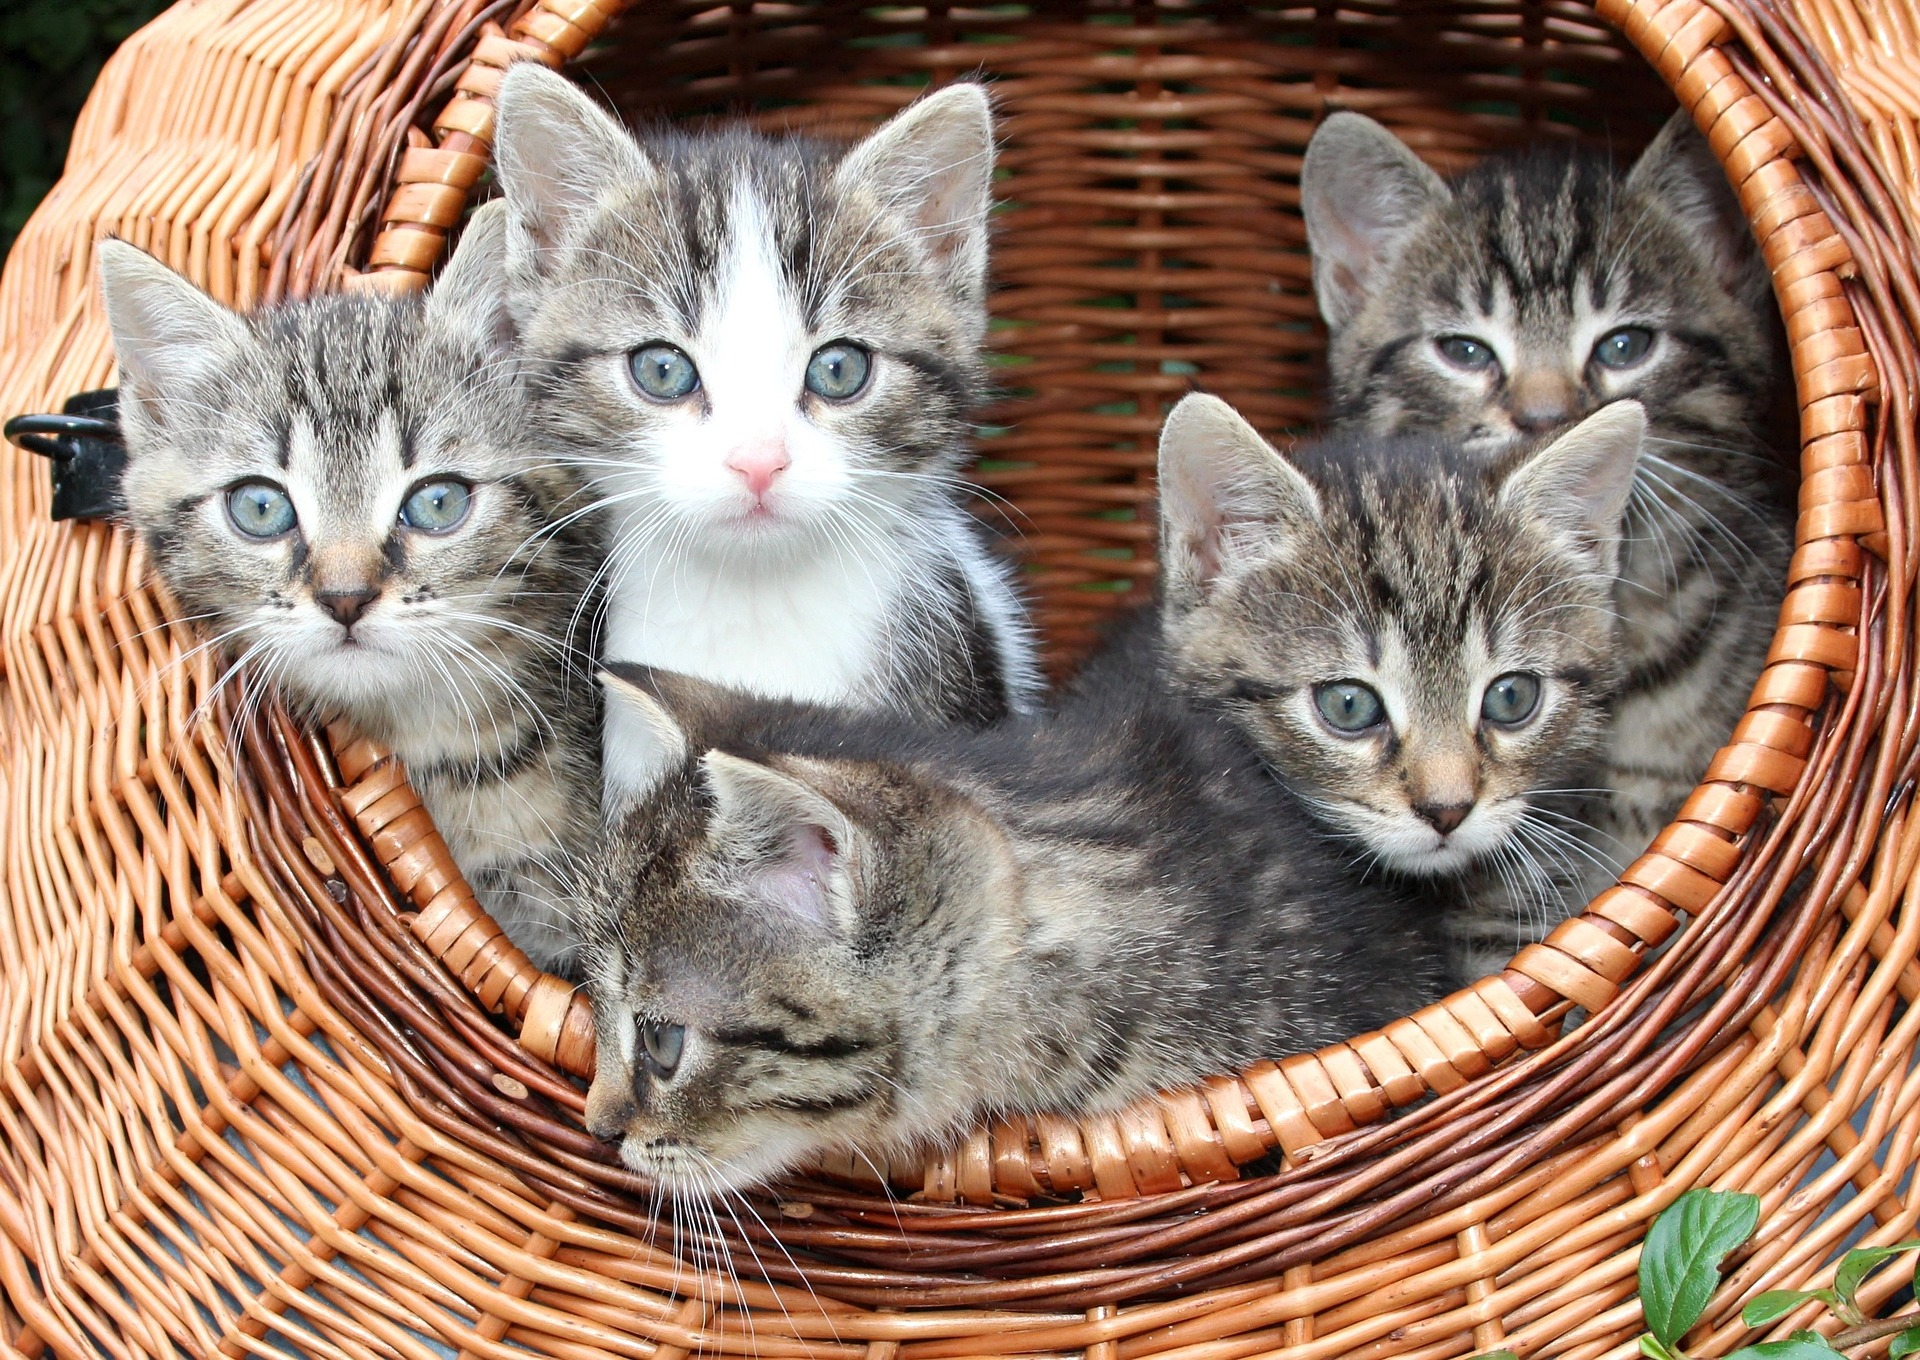 A group of grey kittens in a basket. For a post about sex positive friends